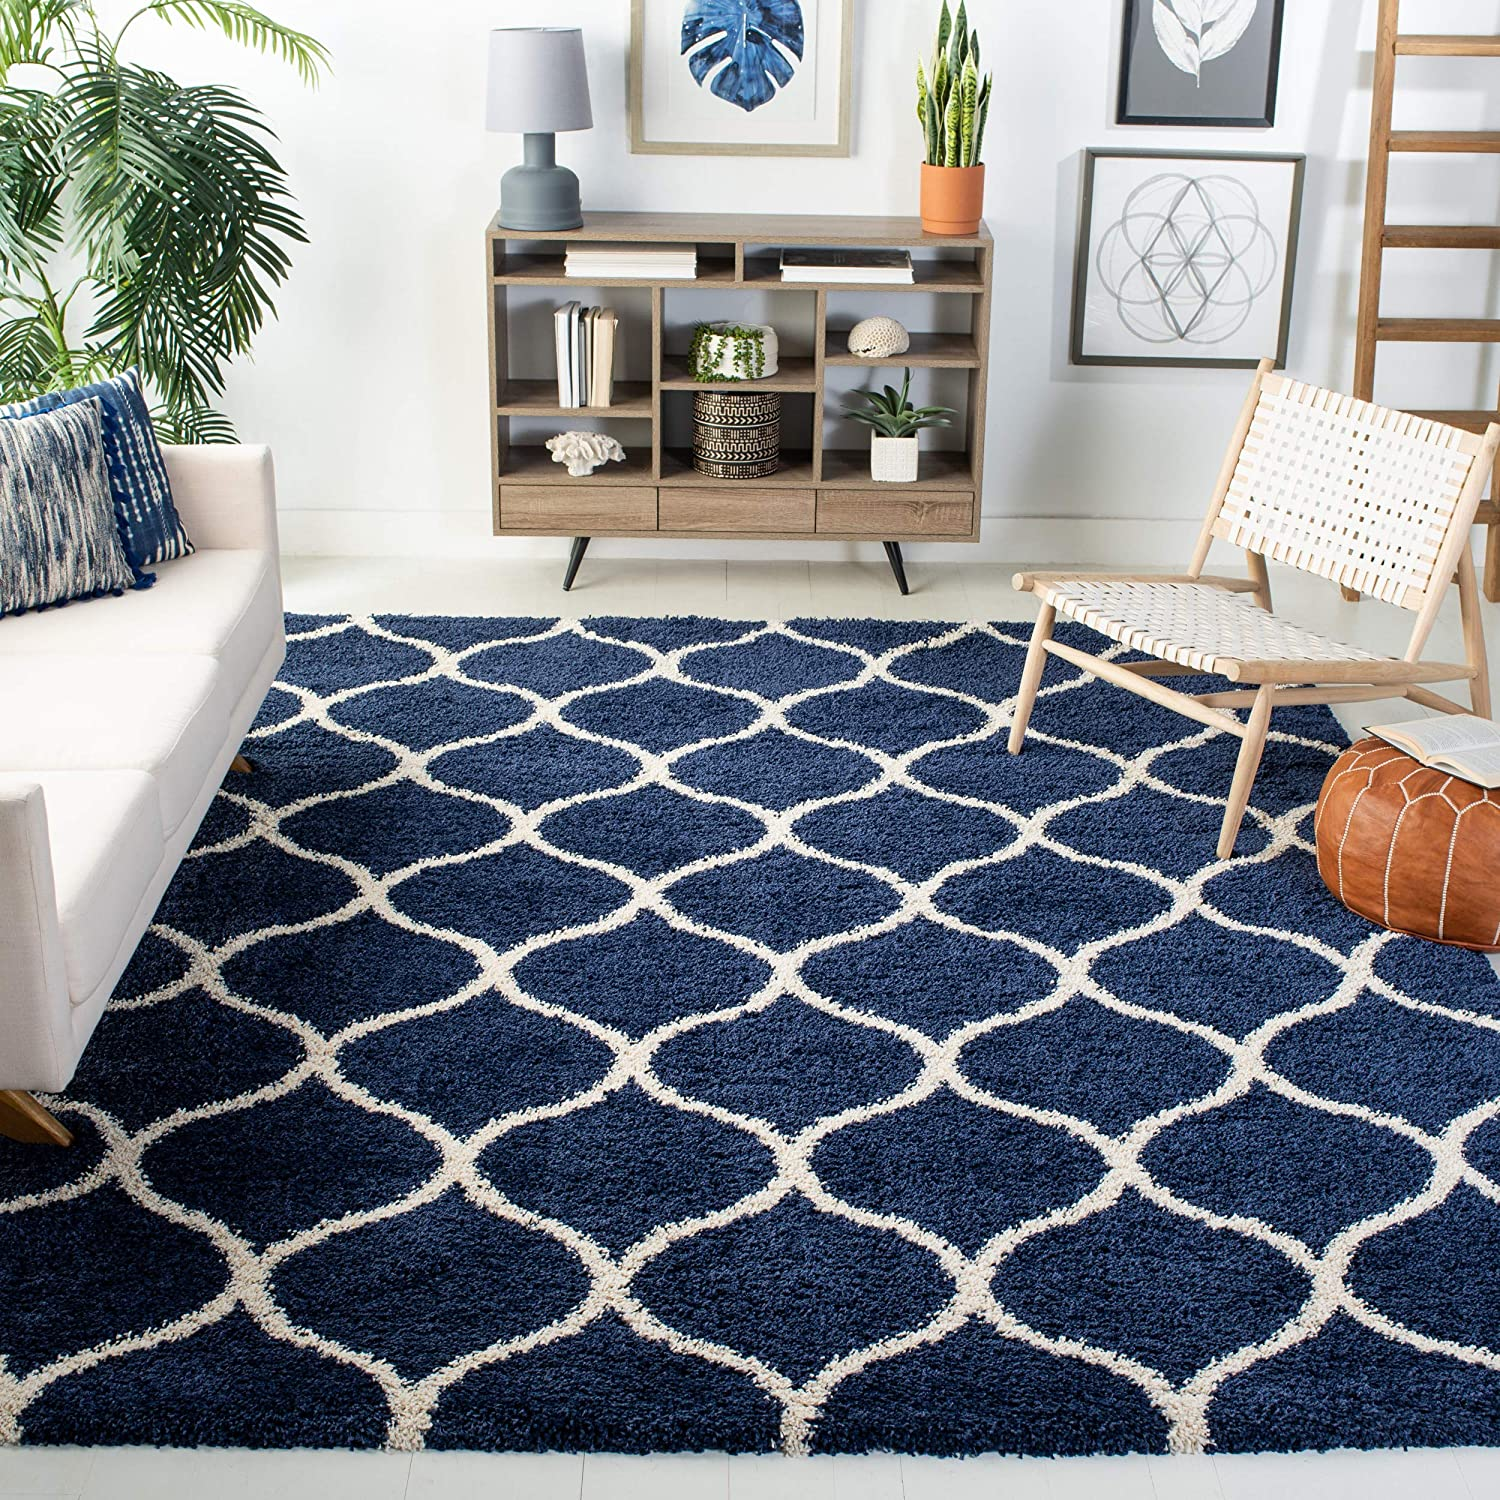 Safavieh Hudson Shag Collection SGH280C Navy and Ivory Moroccan Ogee Plush Area Rug (6' x 9')